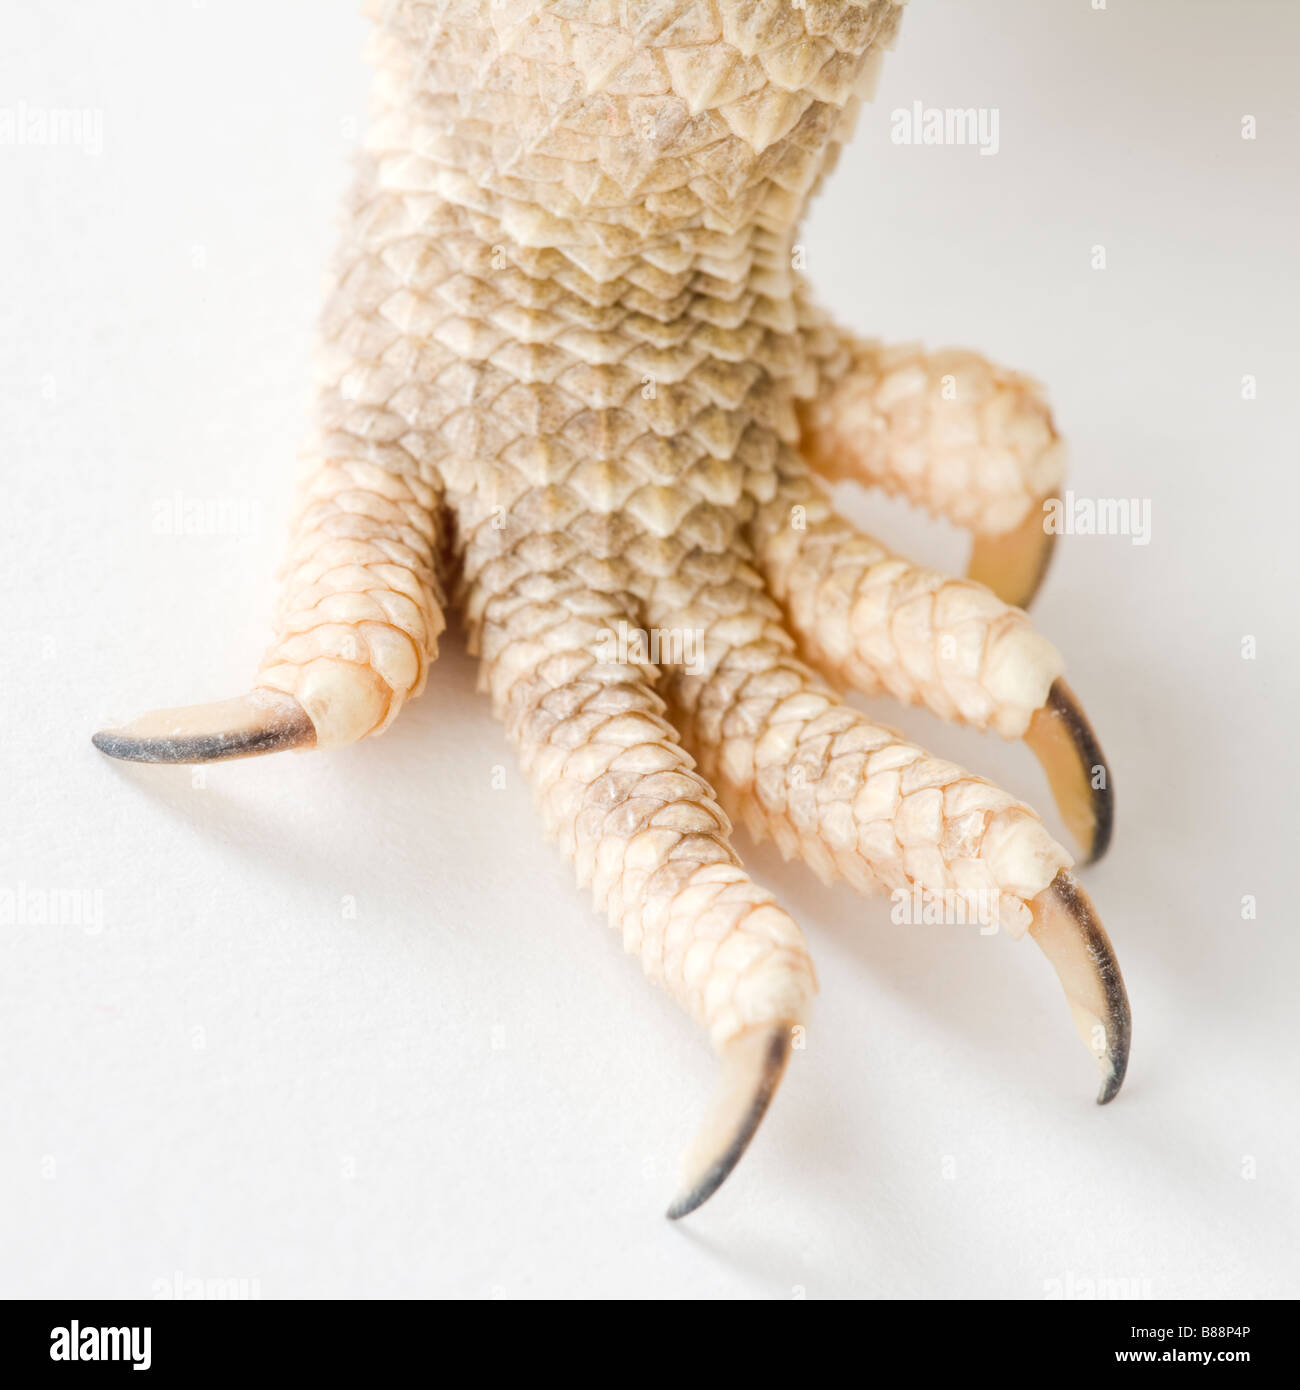 claw of a reptile - Stock Image